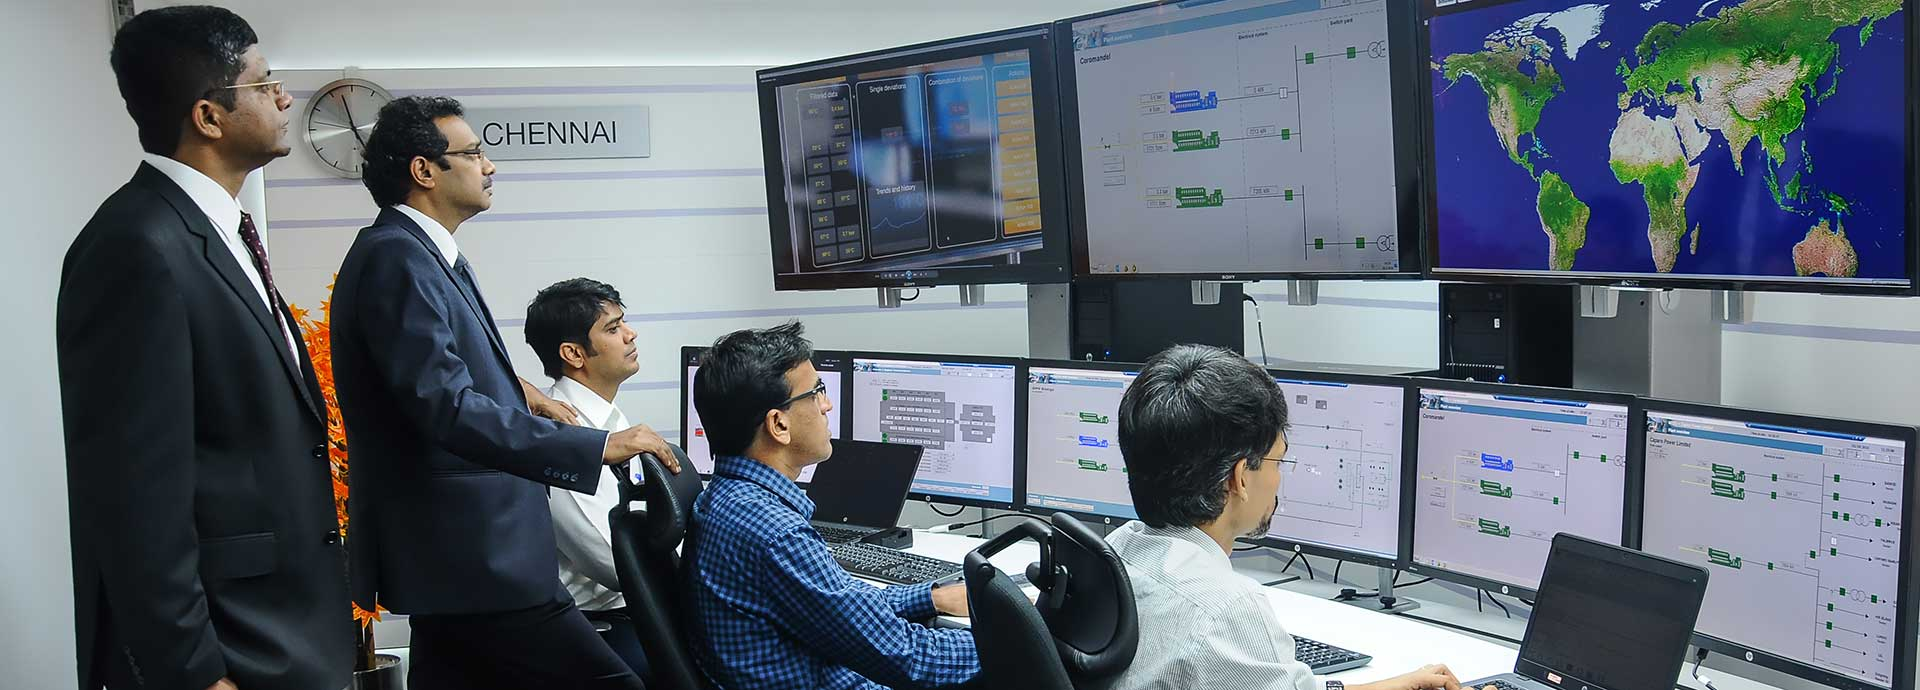 Expertise centres bet on big data